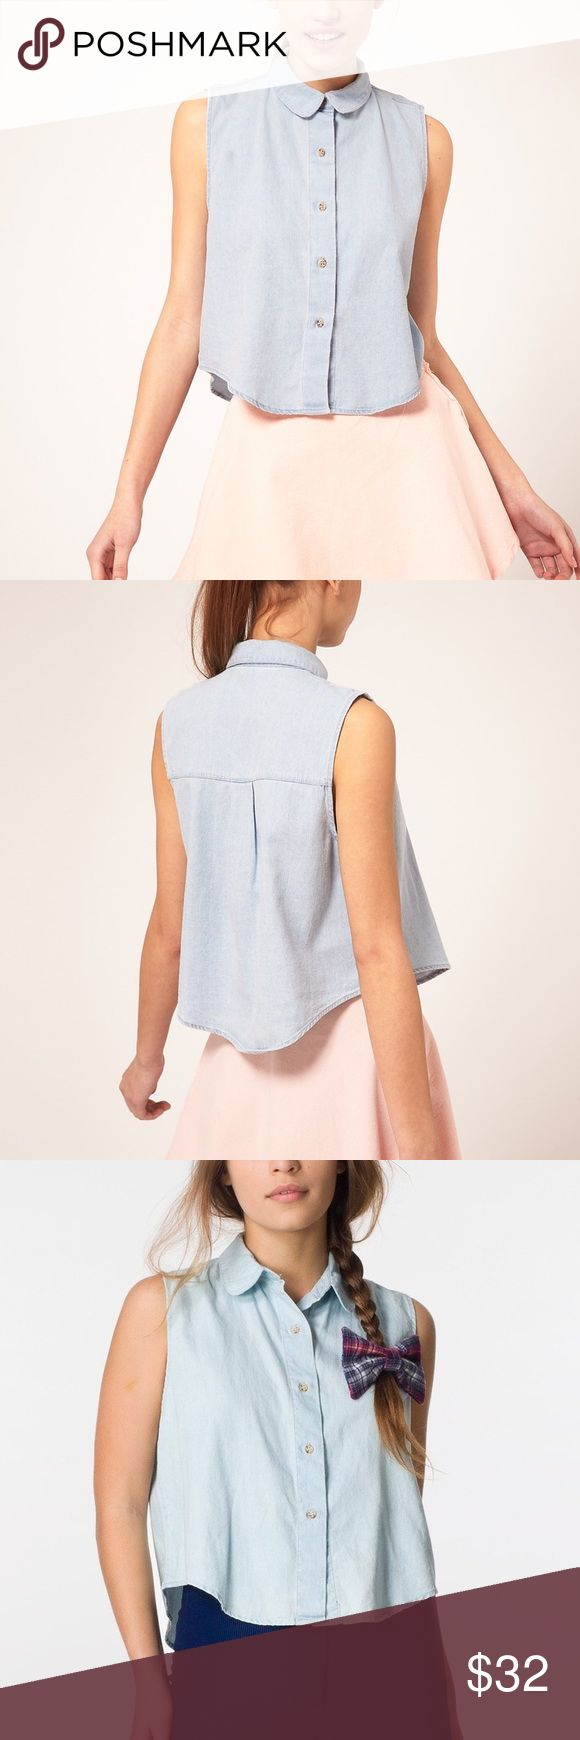 Sleeveless Denim Shirt New American Apparel Tops Button Down Shirts